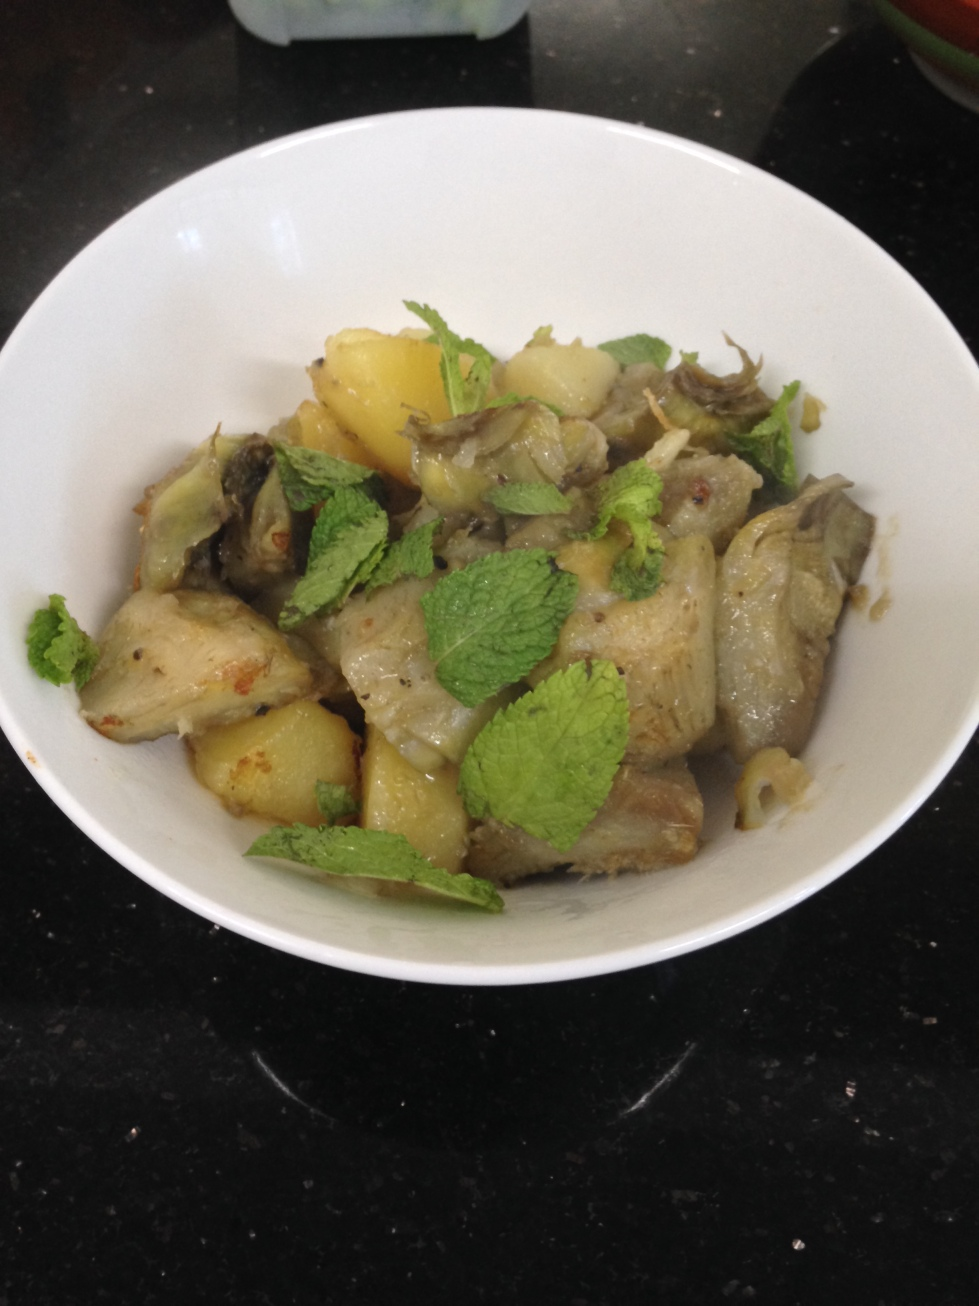 Saute artichokes and potatoes